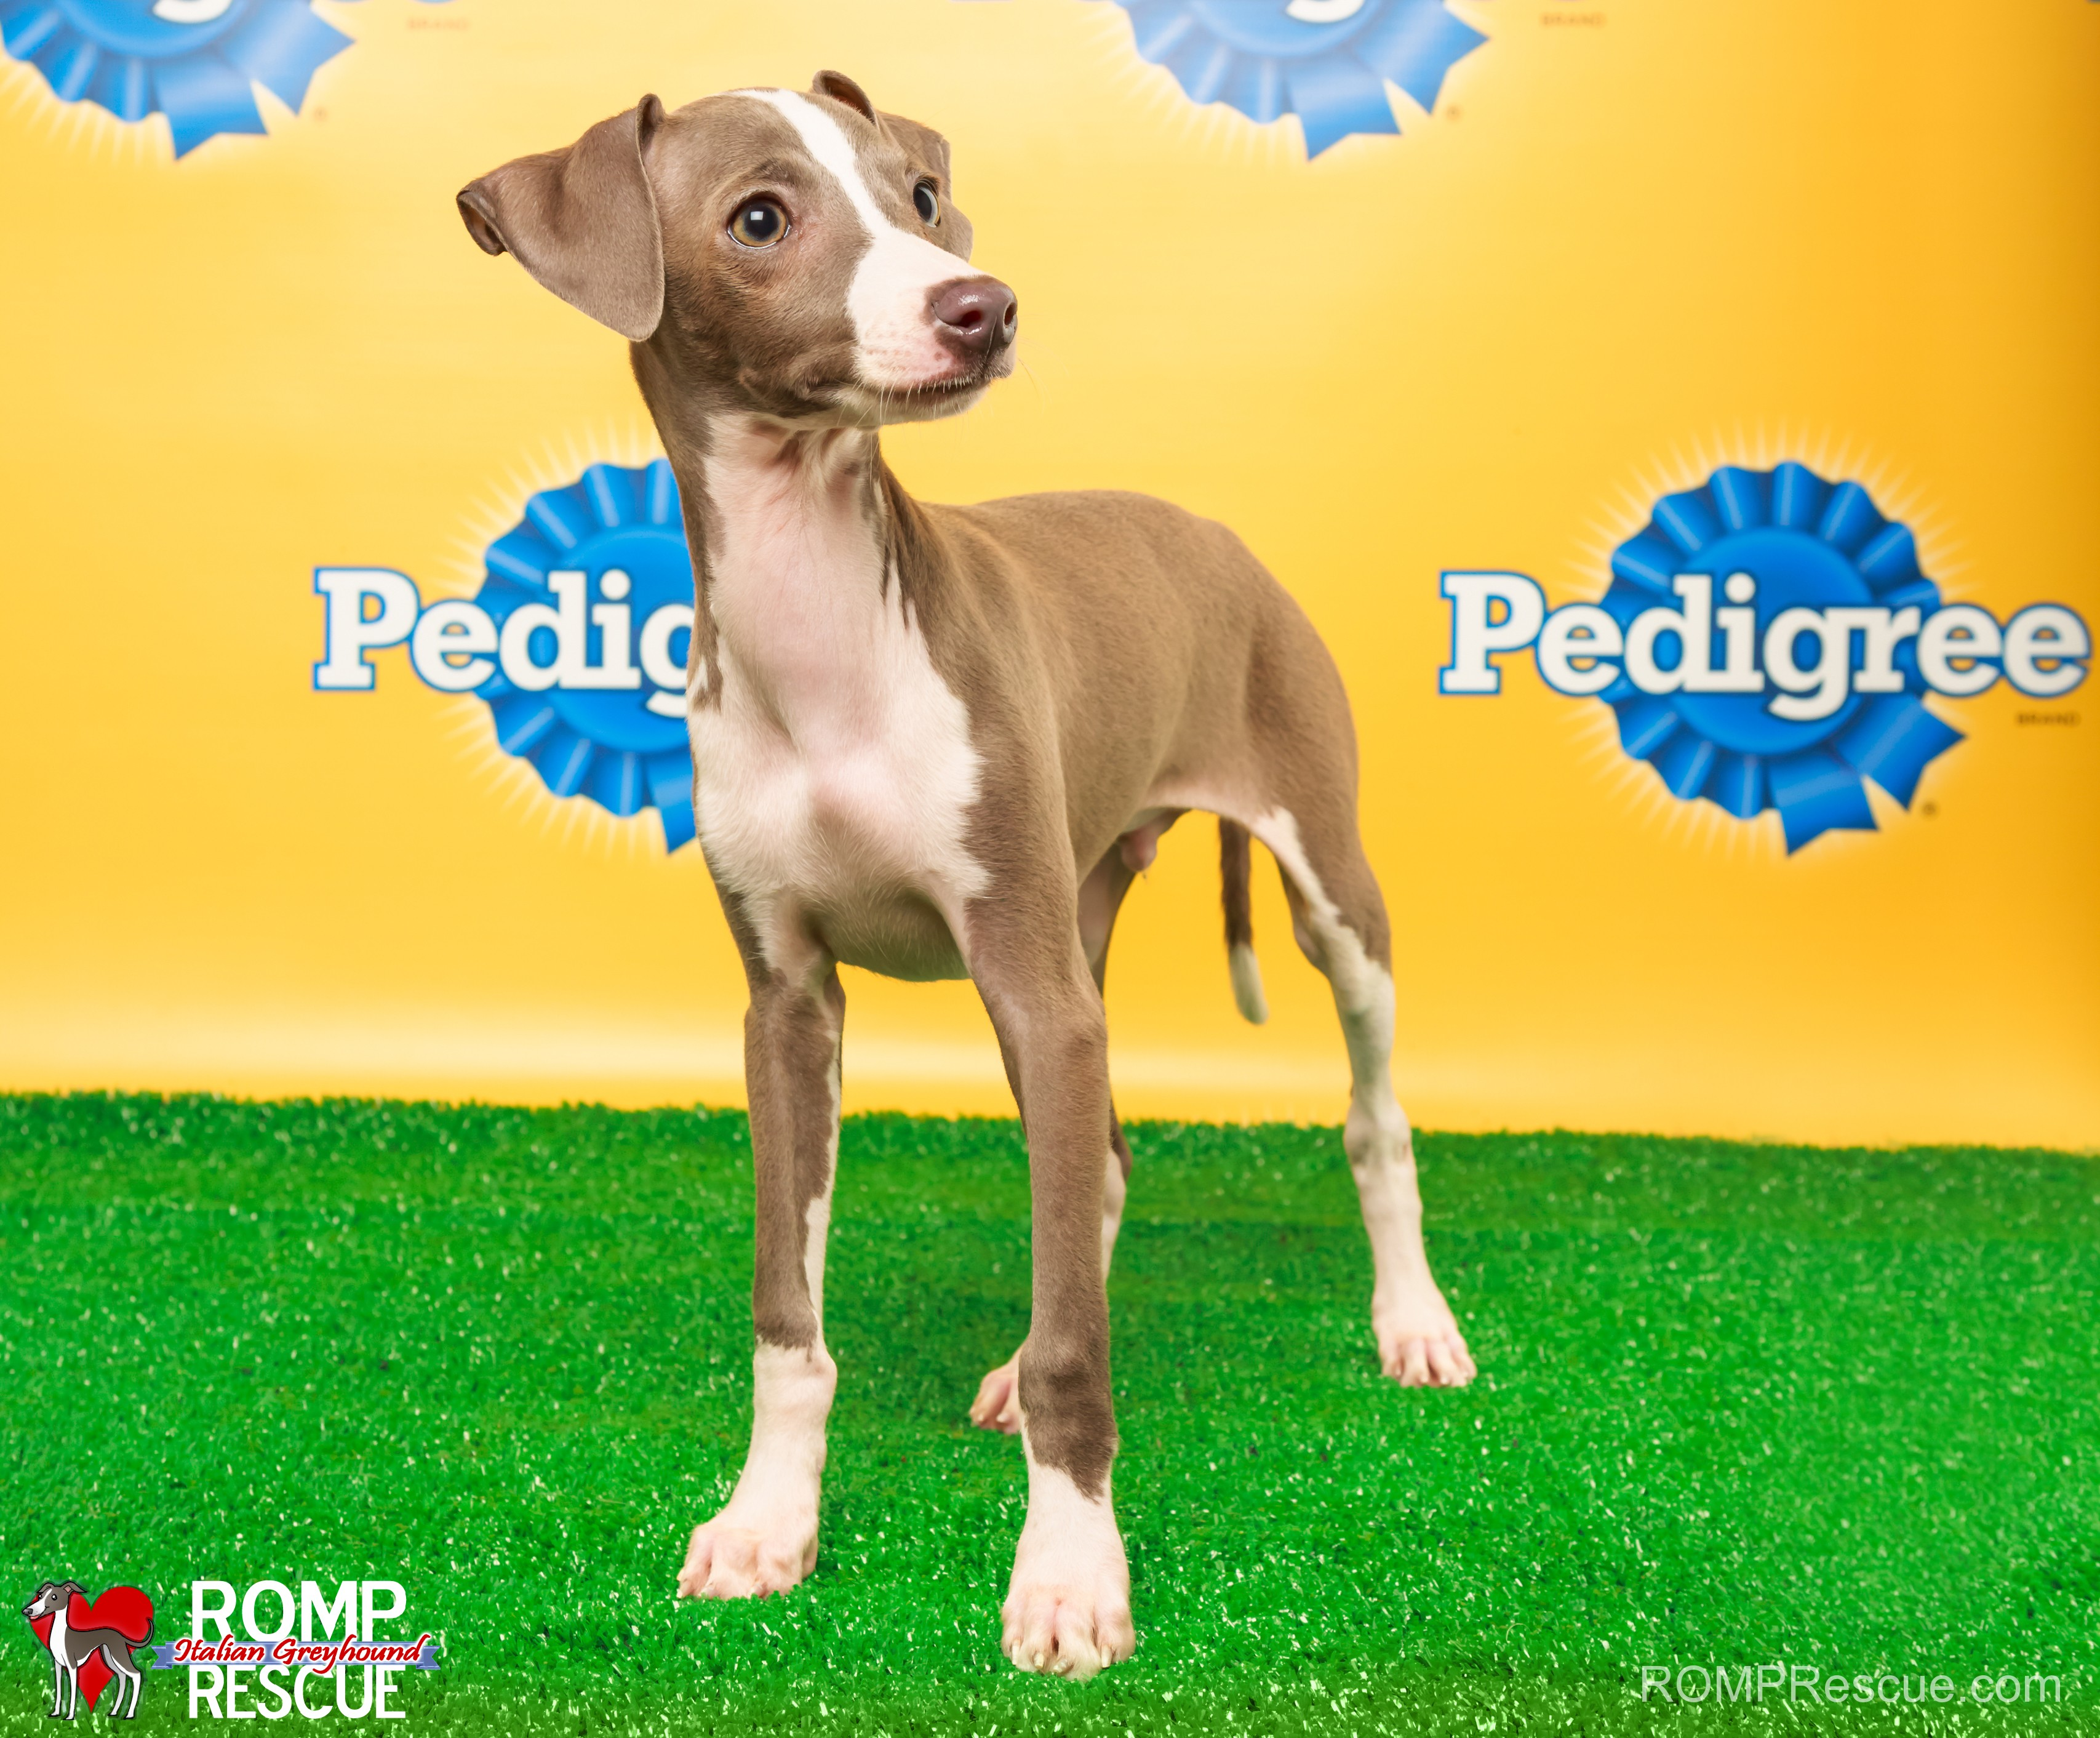 Animal Planet, puppy bowl x, italian greyhound, puppy bowl, iggy, sharpie, romp rescue, chicago, illinois